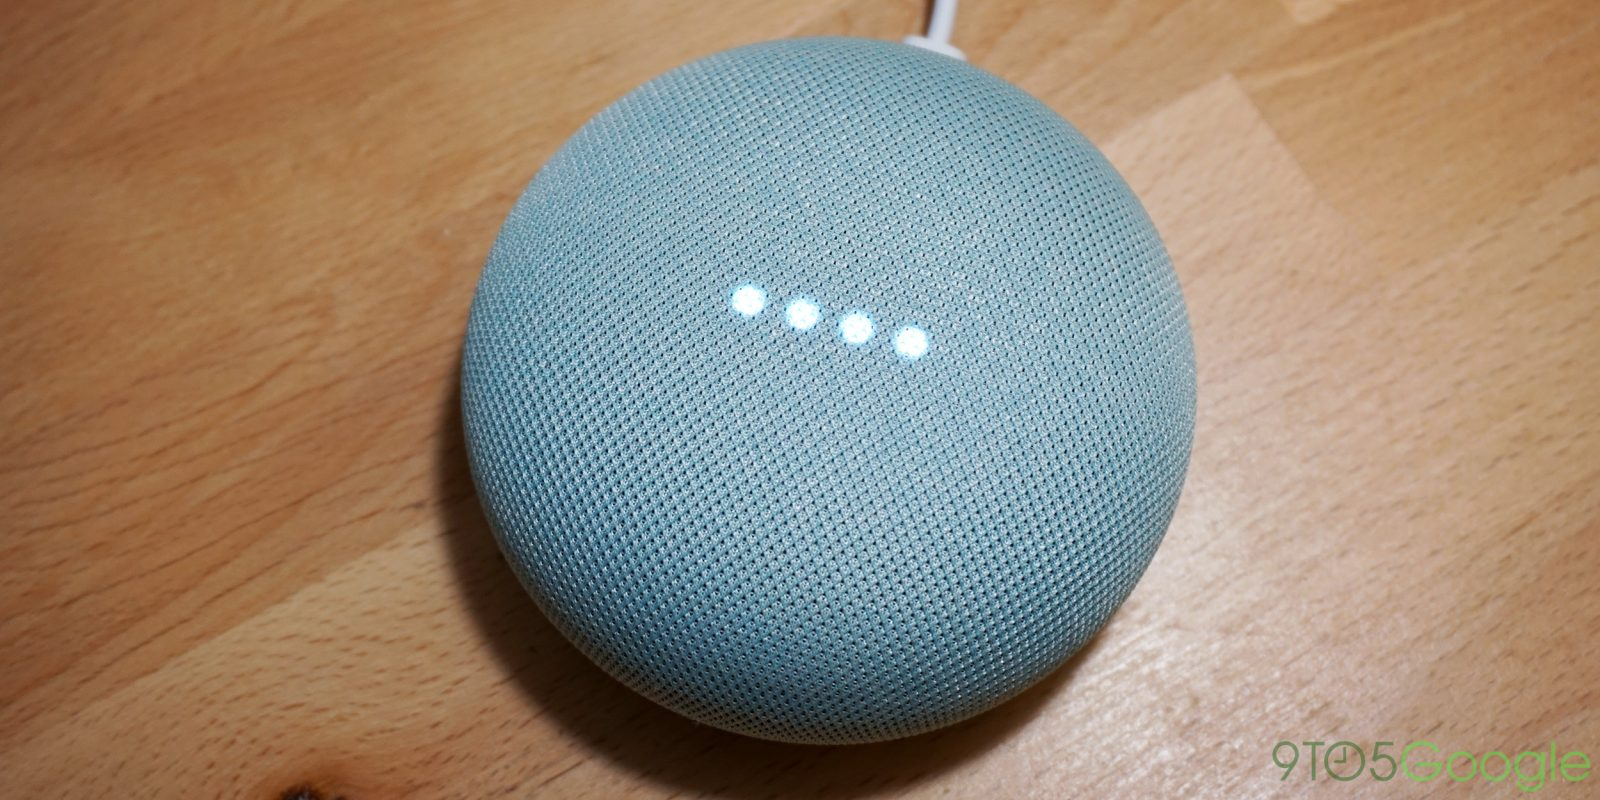 Hands on google home mini 39 s new 39 aqua 39 colorway 9to5google for Google home mini